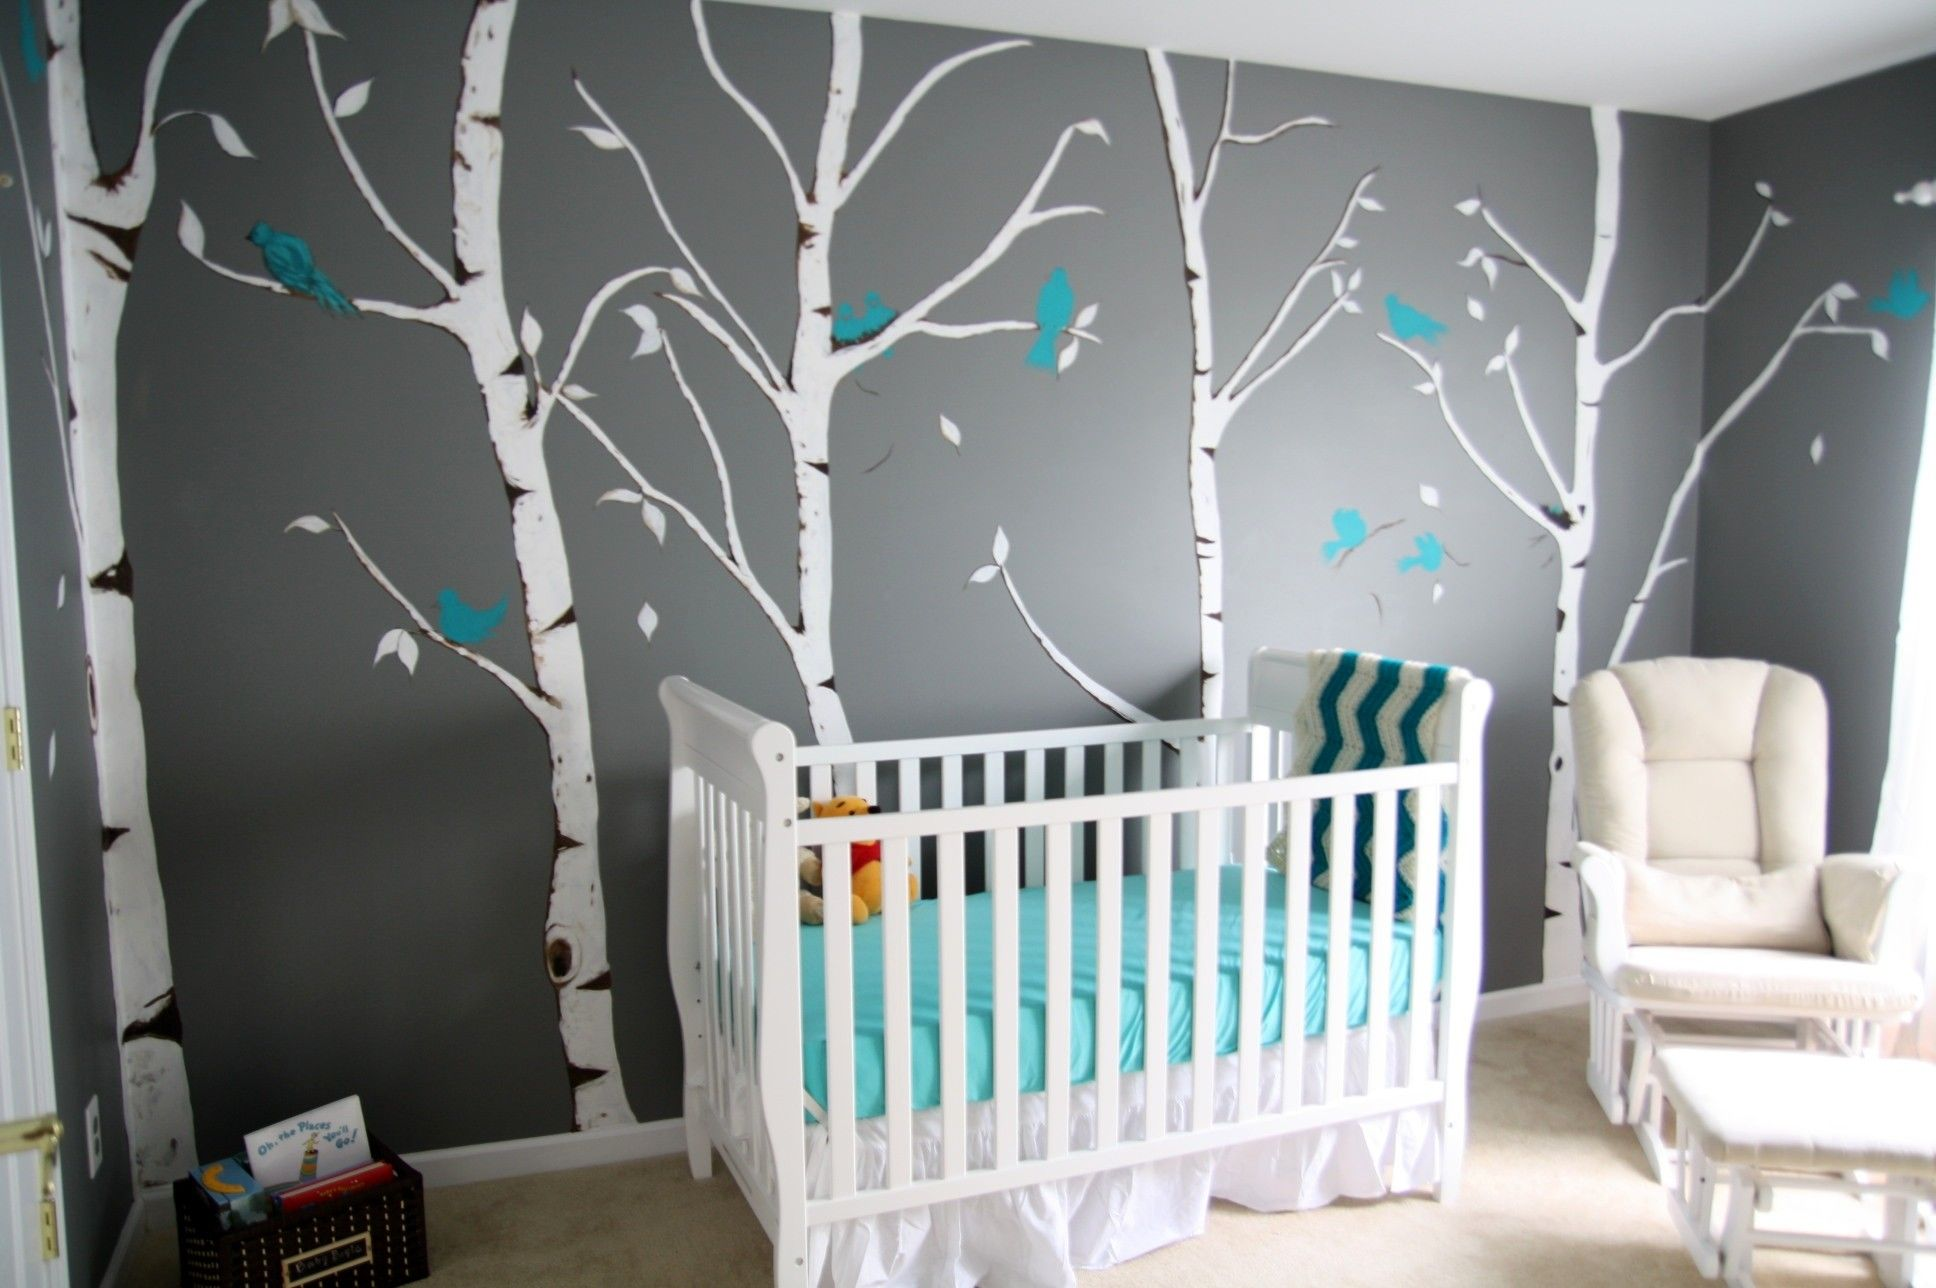 Baby Nursery Decor Modern Decorating Room Boy Ideas White Bed Furniture Pooh Accessories Forest Wall Art Blue Birds Dark Gray Colored